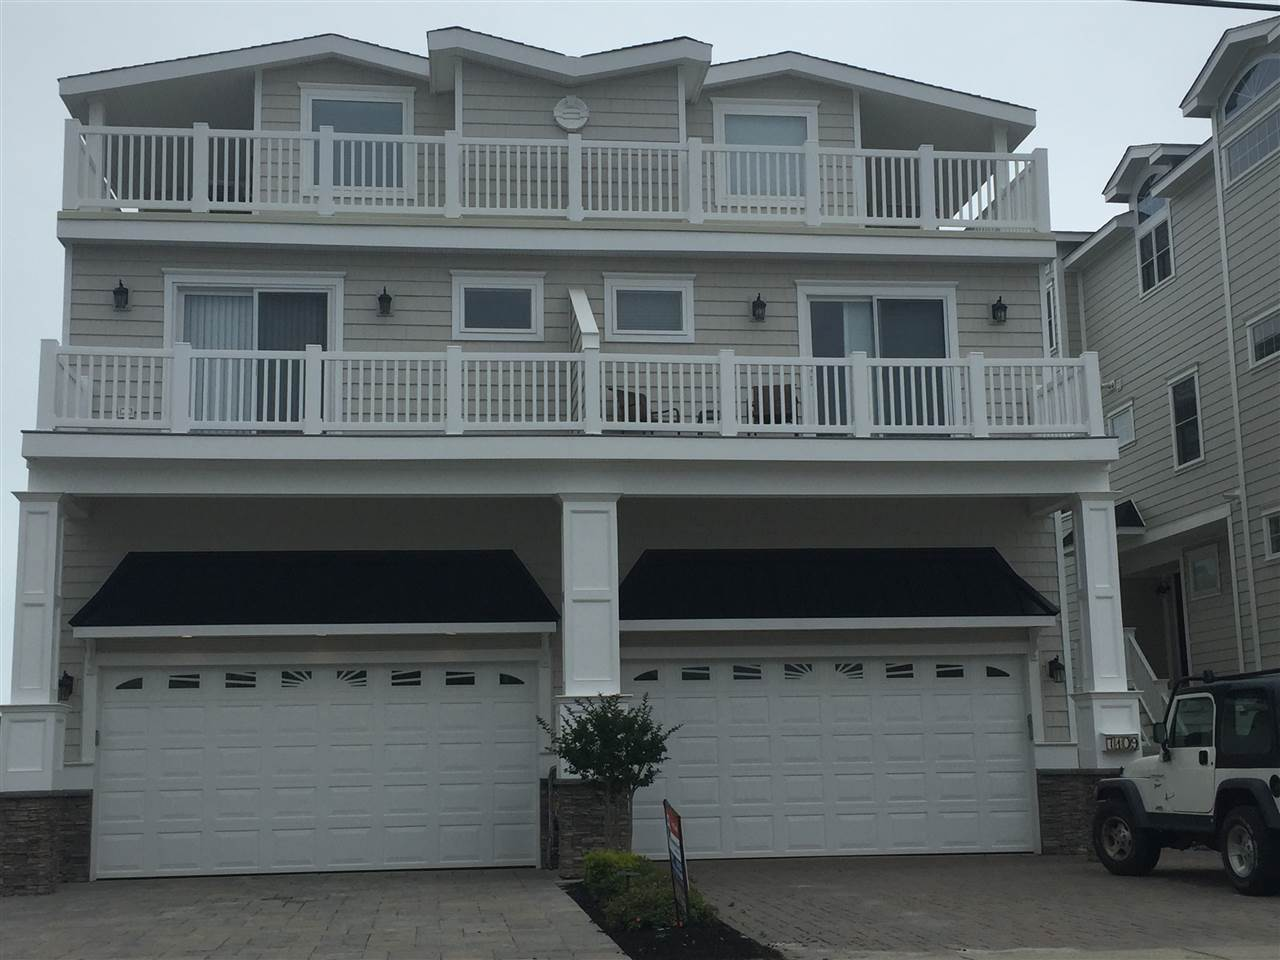 7109 Pleasure N, Sea Isle City, NJ 08243